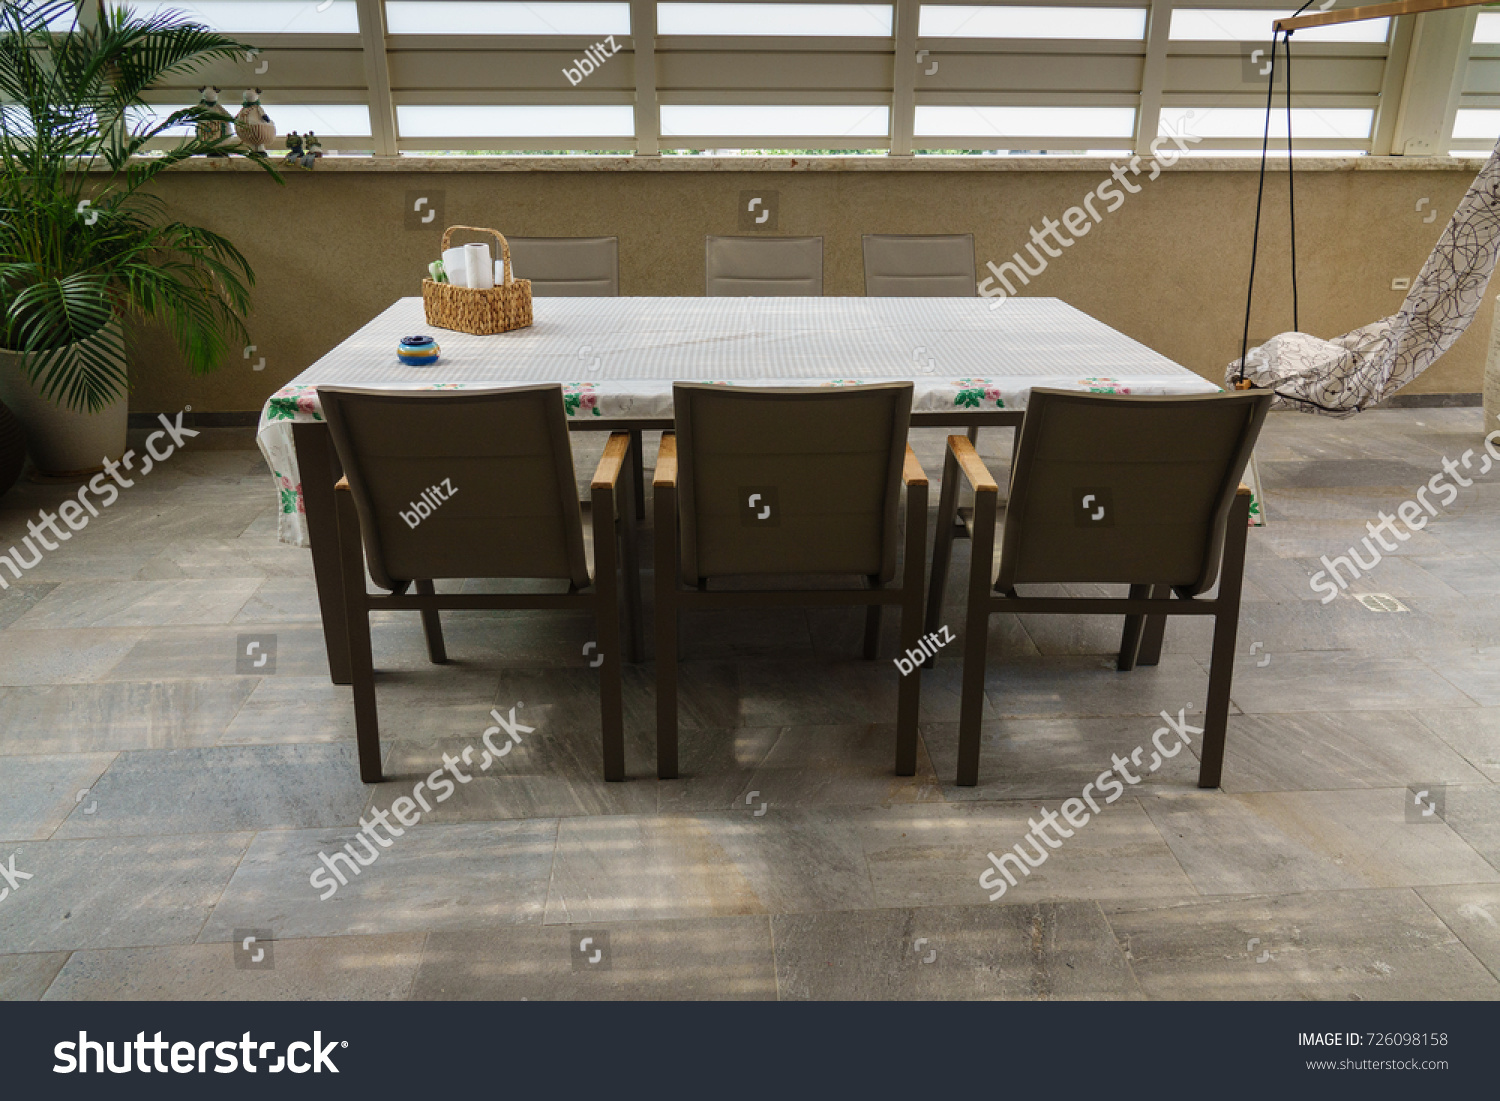 Large patio table with six chairs